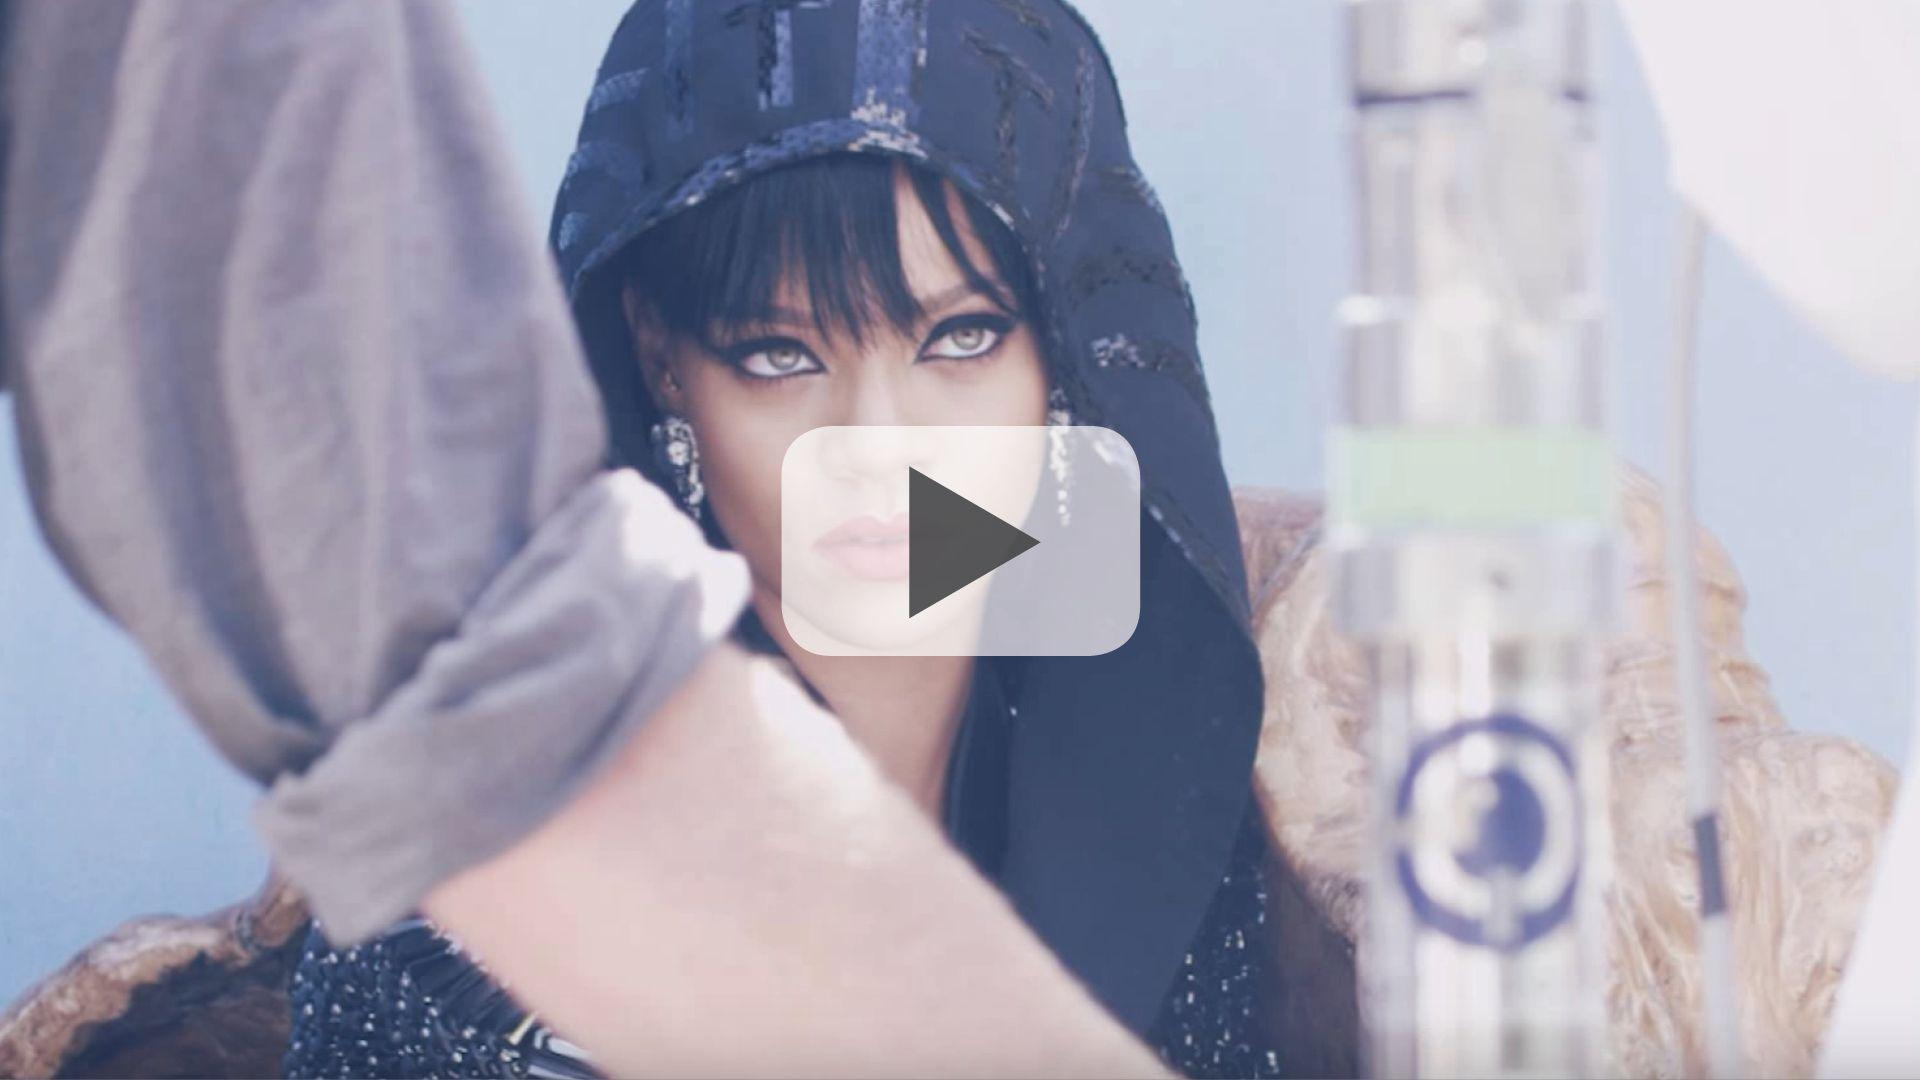 Watch Now: Go Behind-The-Scenes On Our Cover Shoot With Rihanna